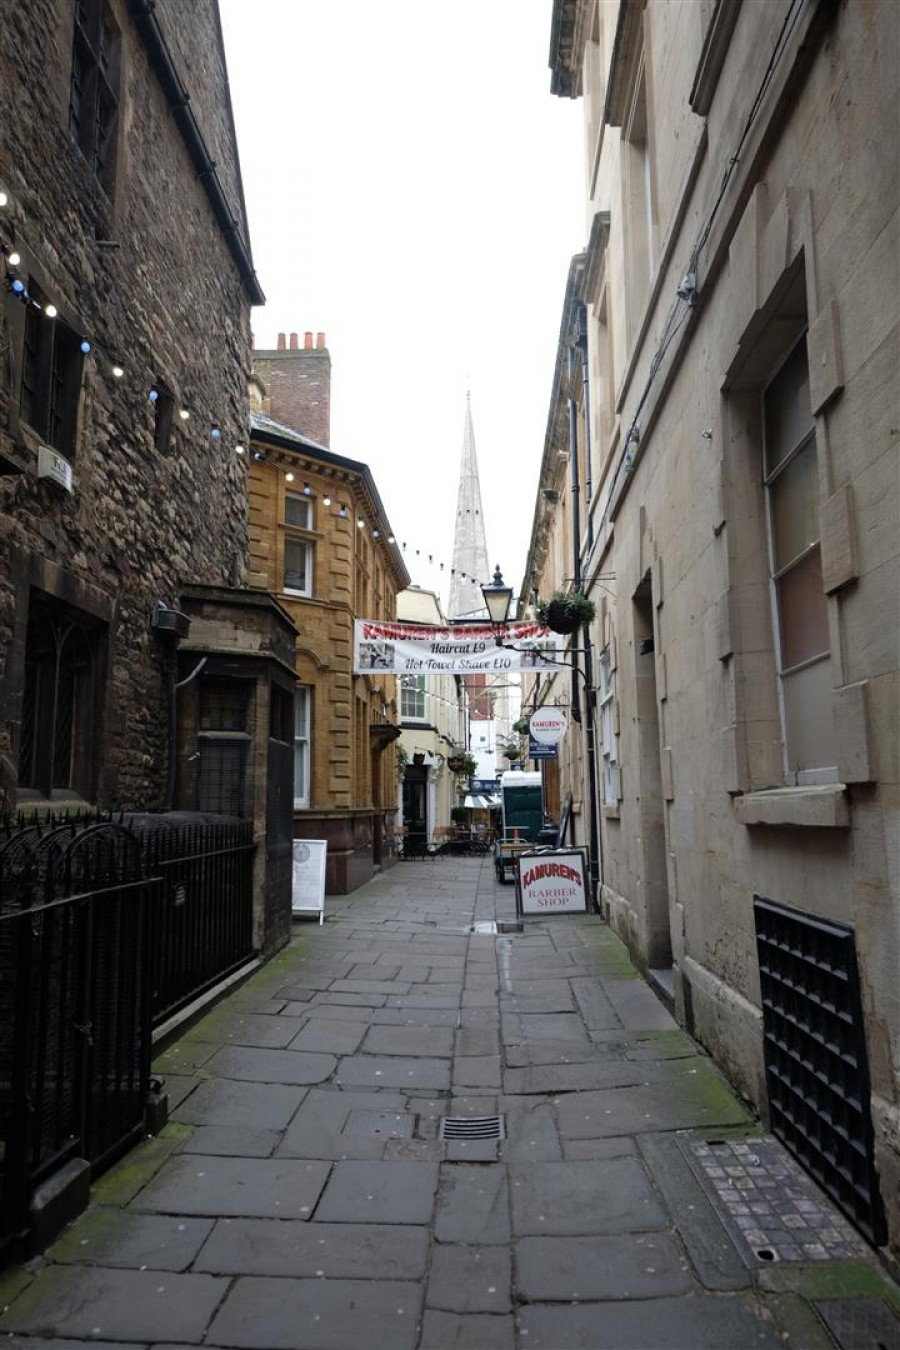 Images for All Saints House, 6 All Saints Lane, City Centre, Bristol EAID:hollismoapi BID:11